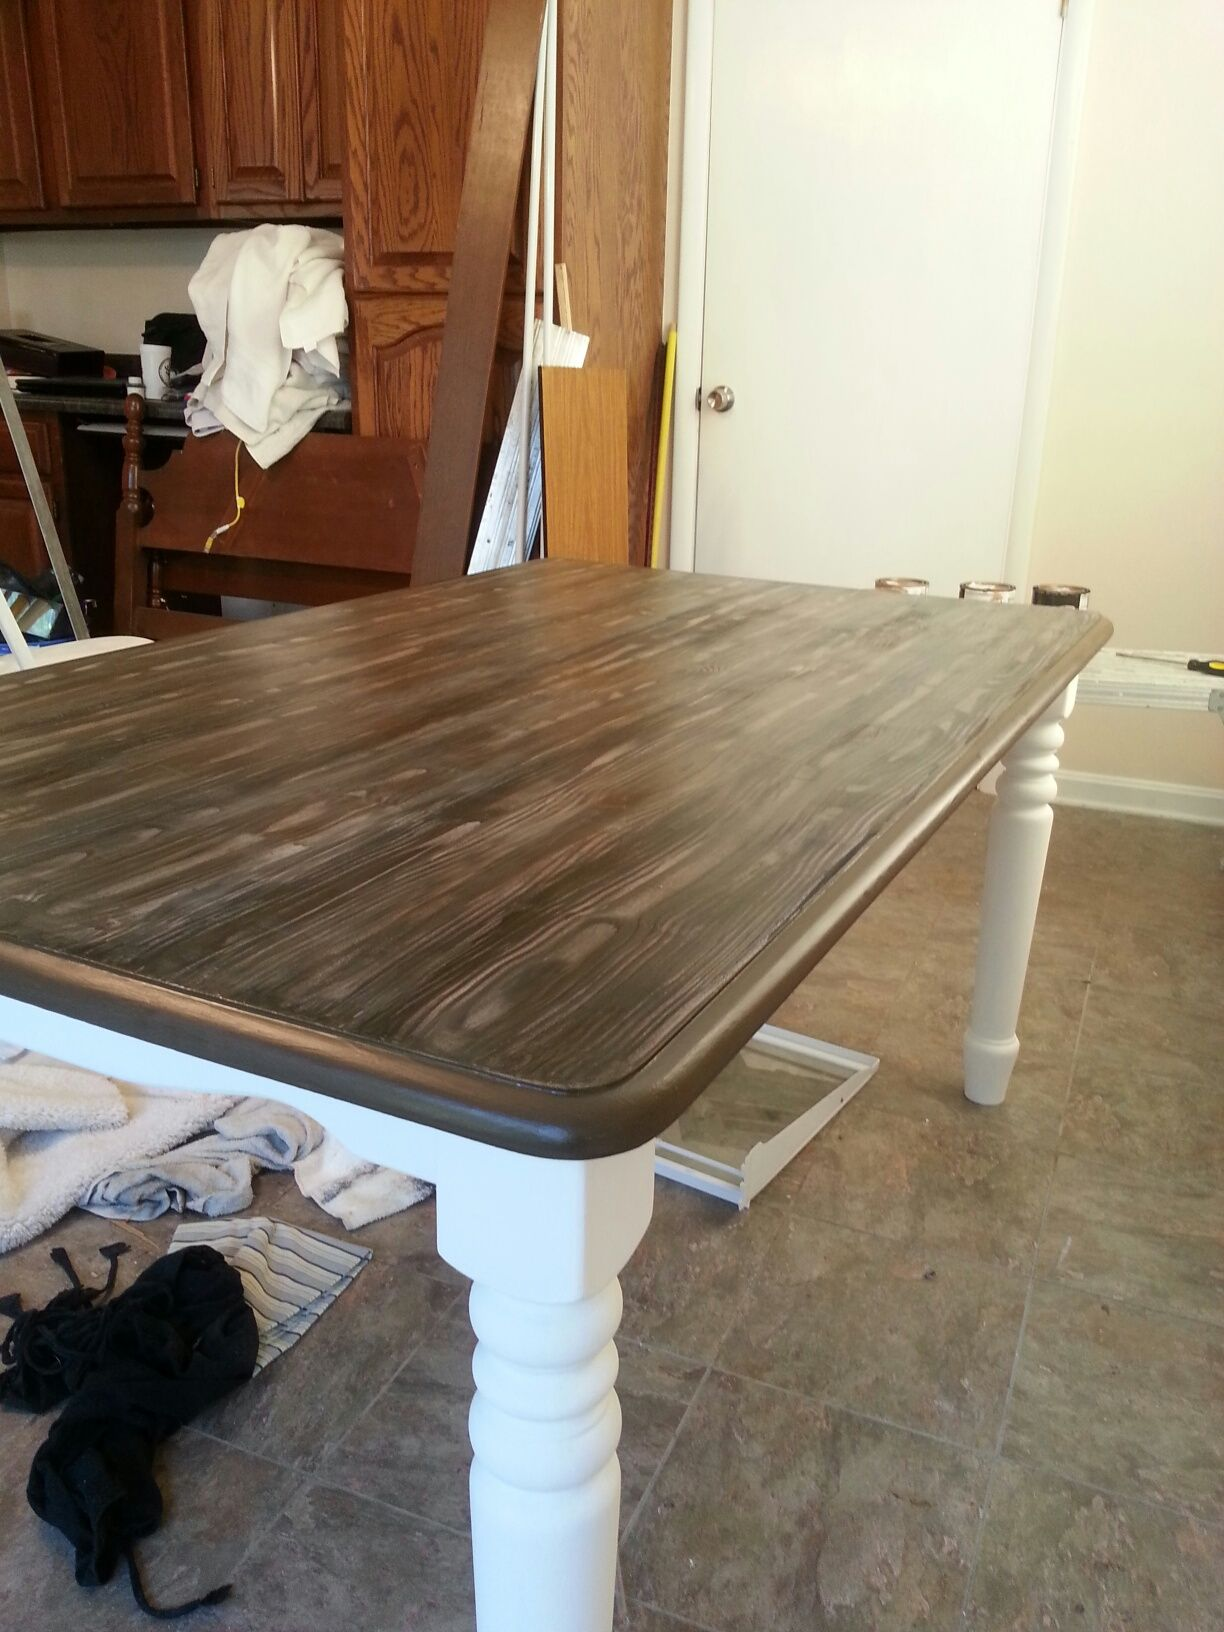 Refurbished table with faux finish of barnwood using van gogh chalk paint collection layering - Wood exterior paint collection ...